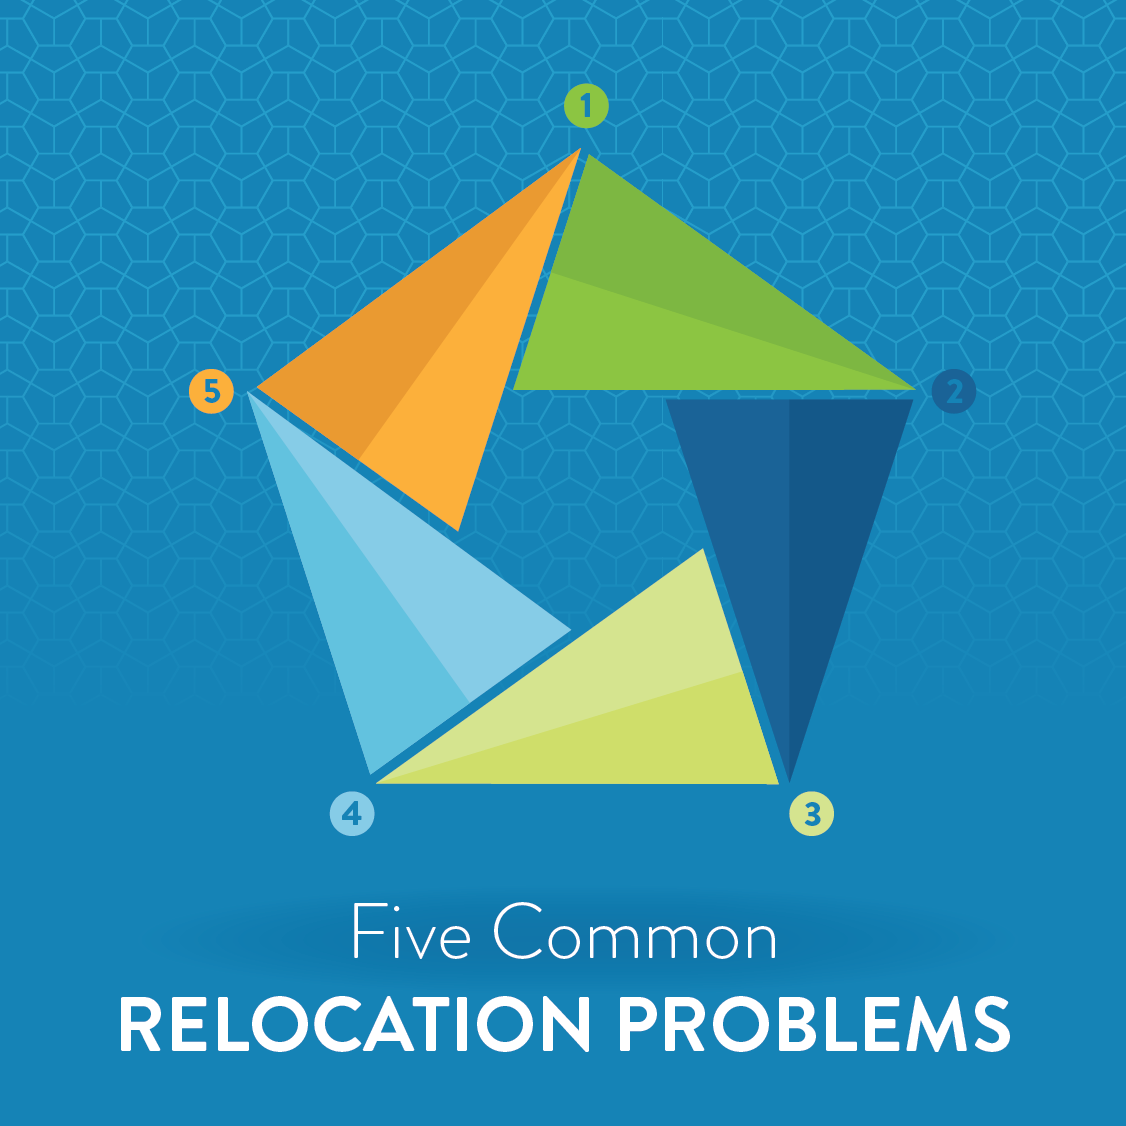 Five Common Relocation Problems